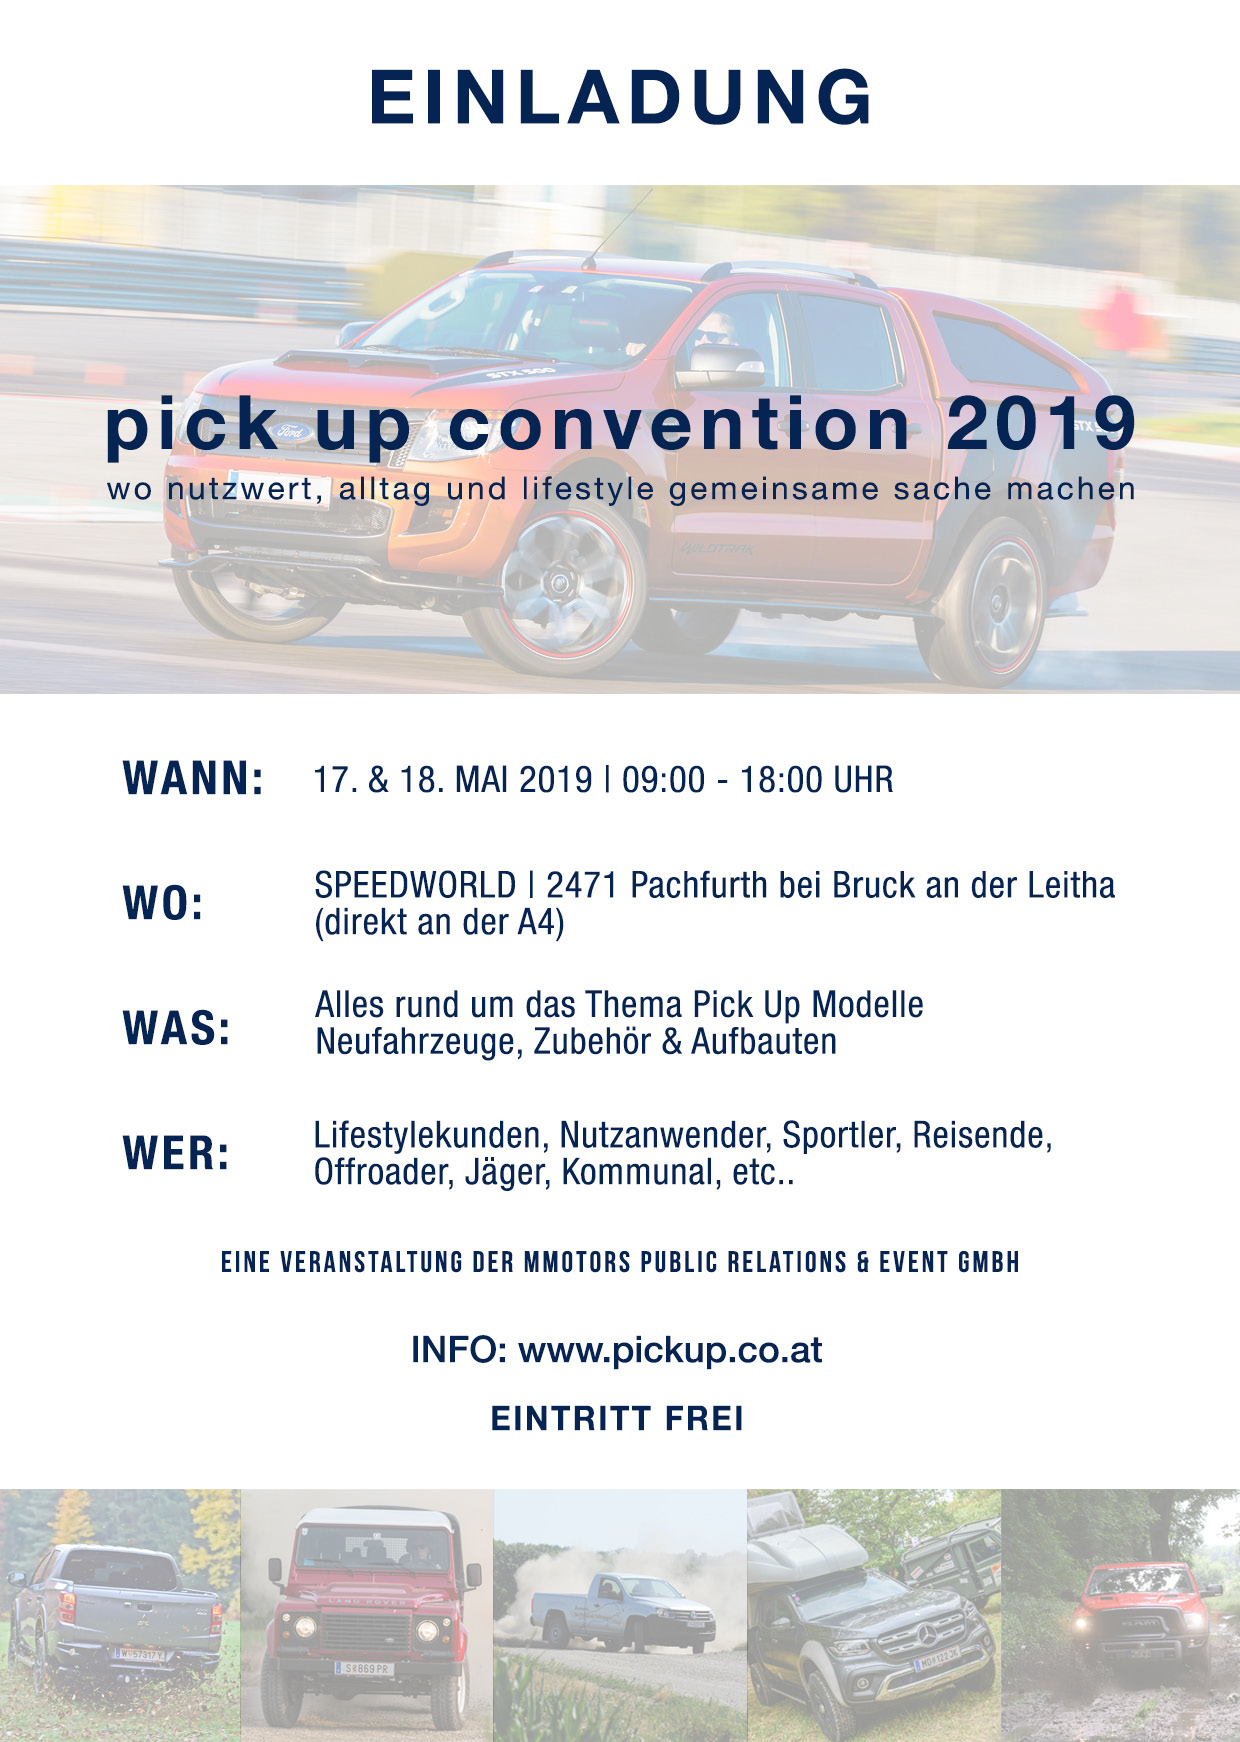 Einladungsflyer Pick up Convention 2019